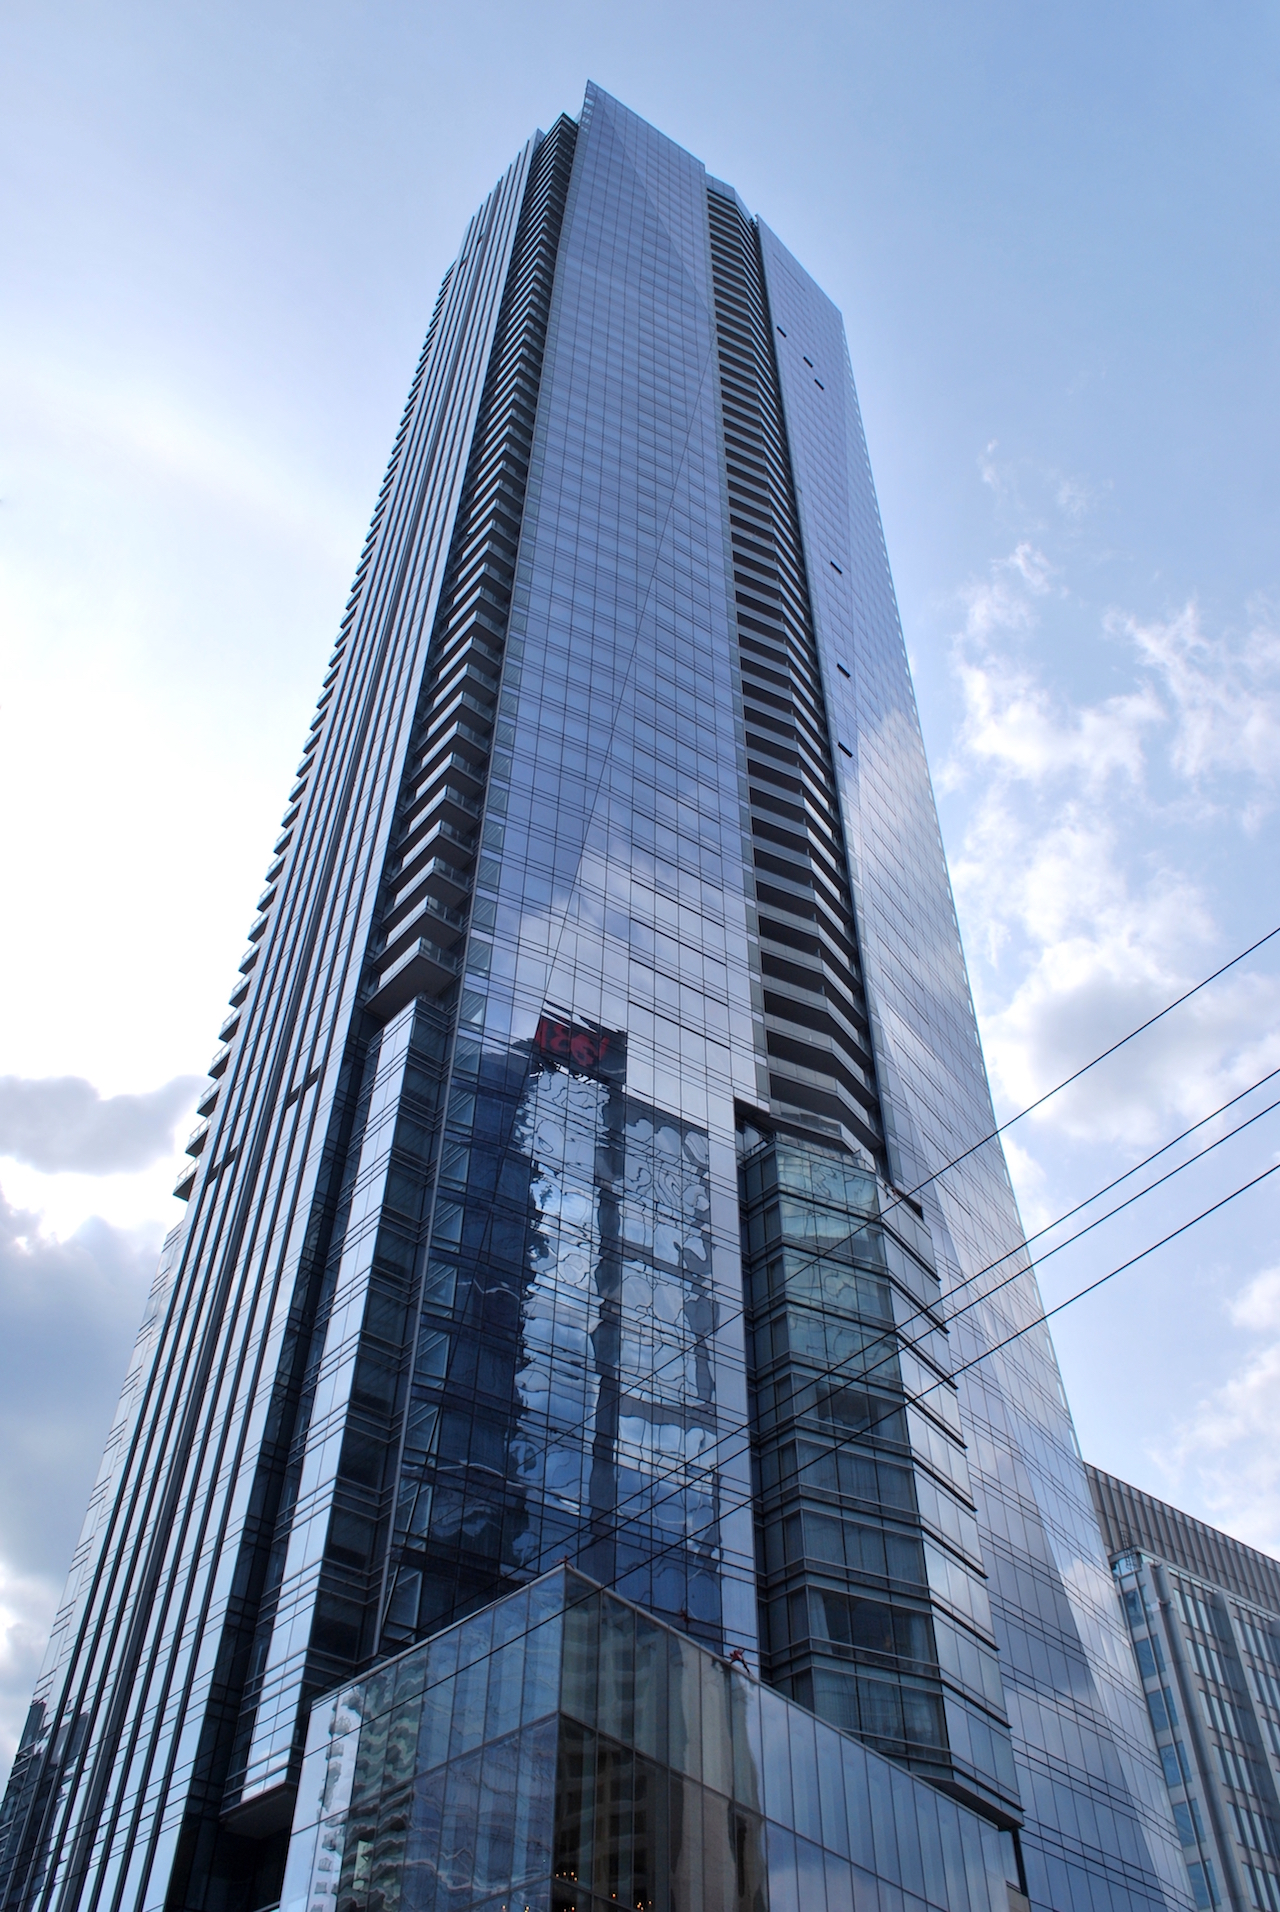 Toronto's Tallest Buildings of the 2010s